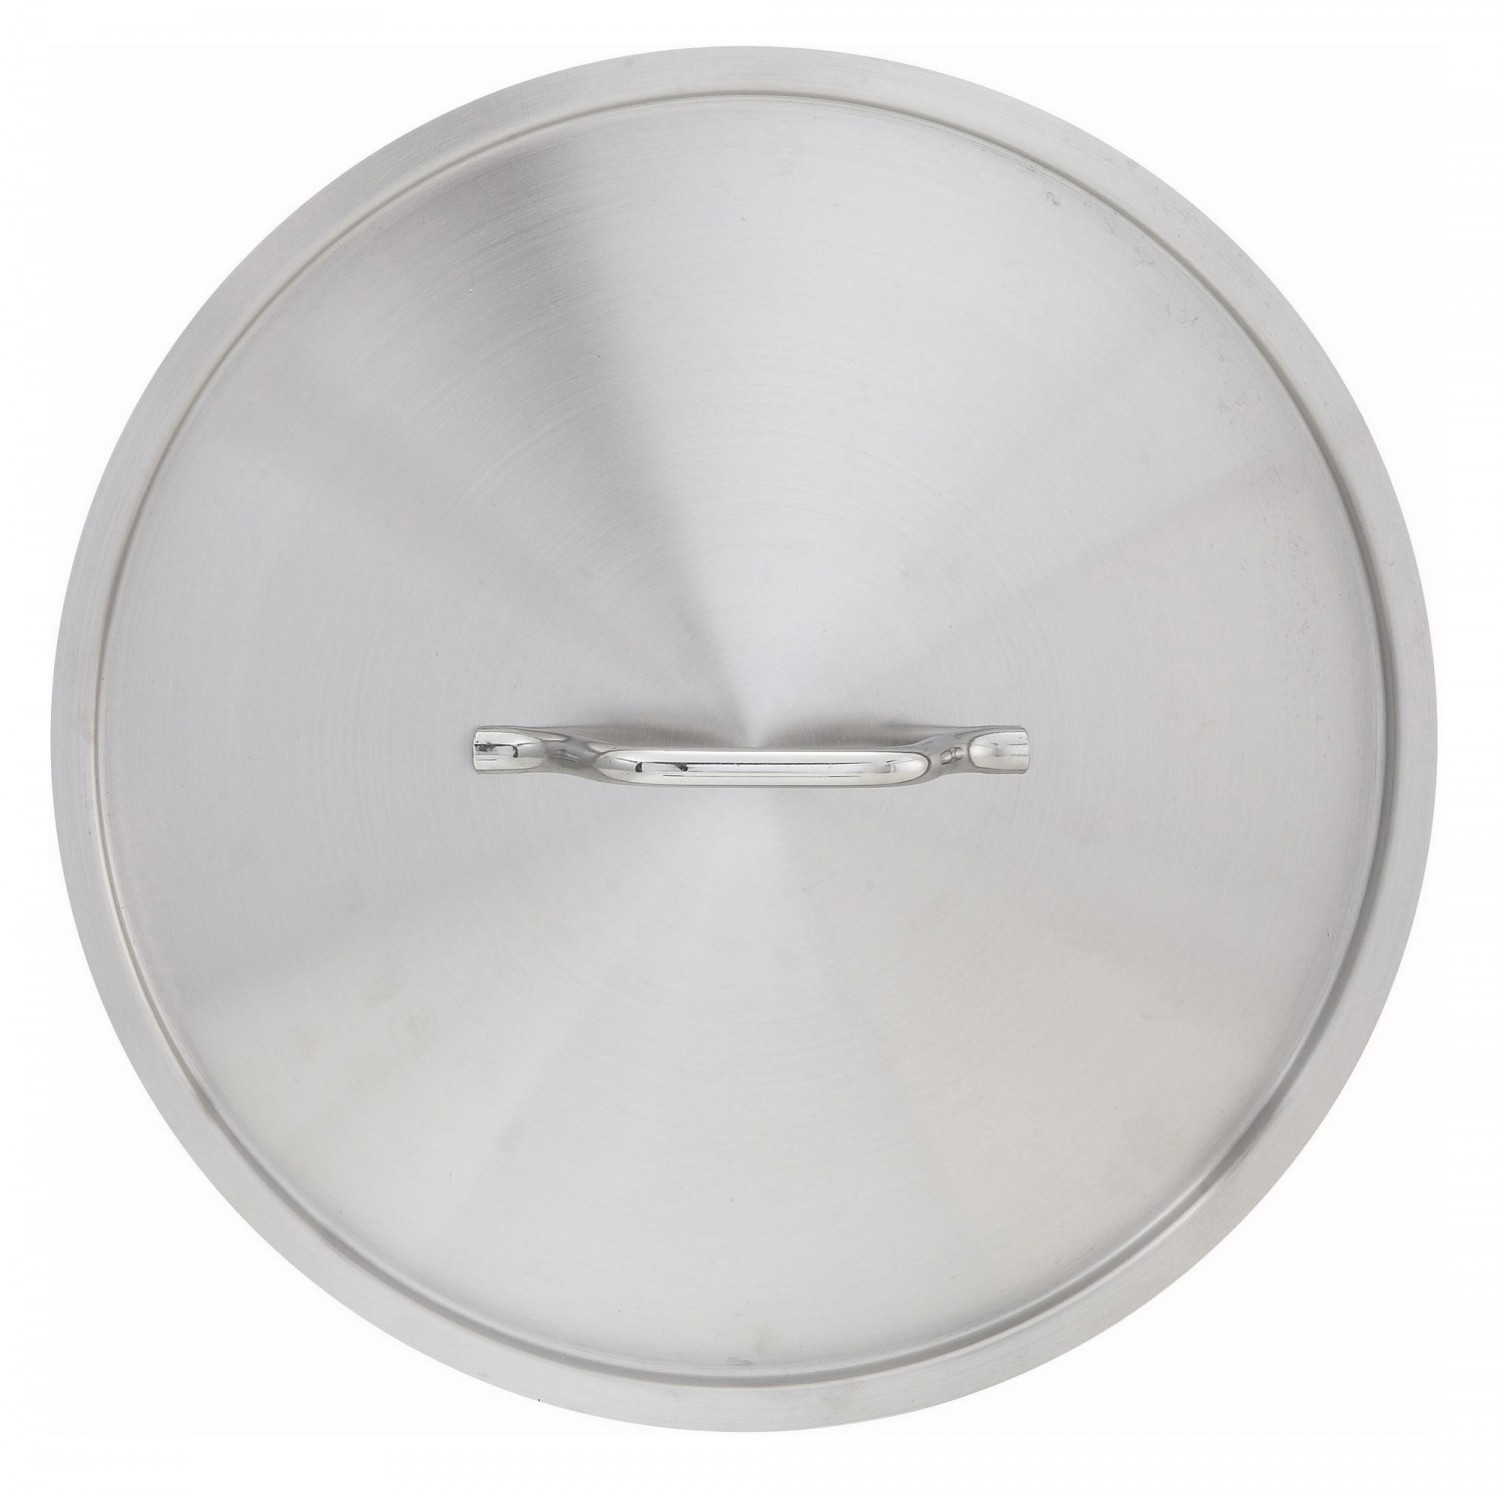 Winco SSTC-8F Stainless Steel  Fry Pan Cover for SSFP-8/8NS, SSSP-3/4